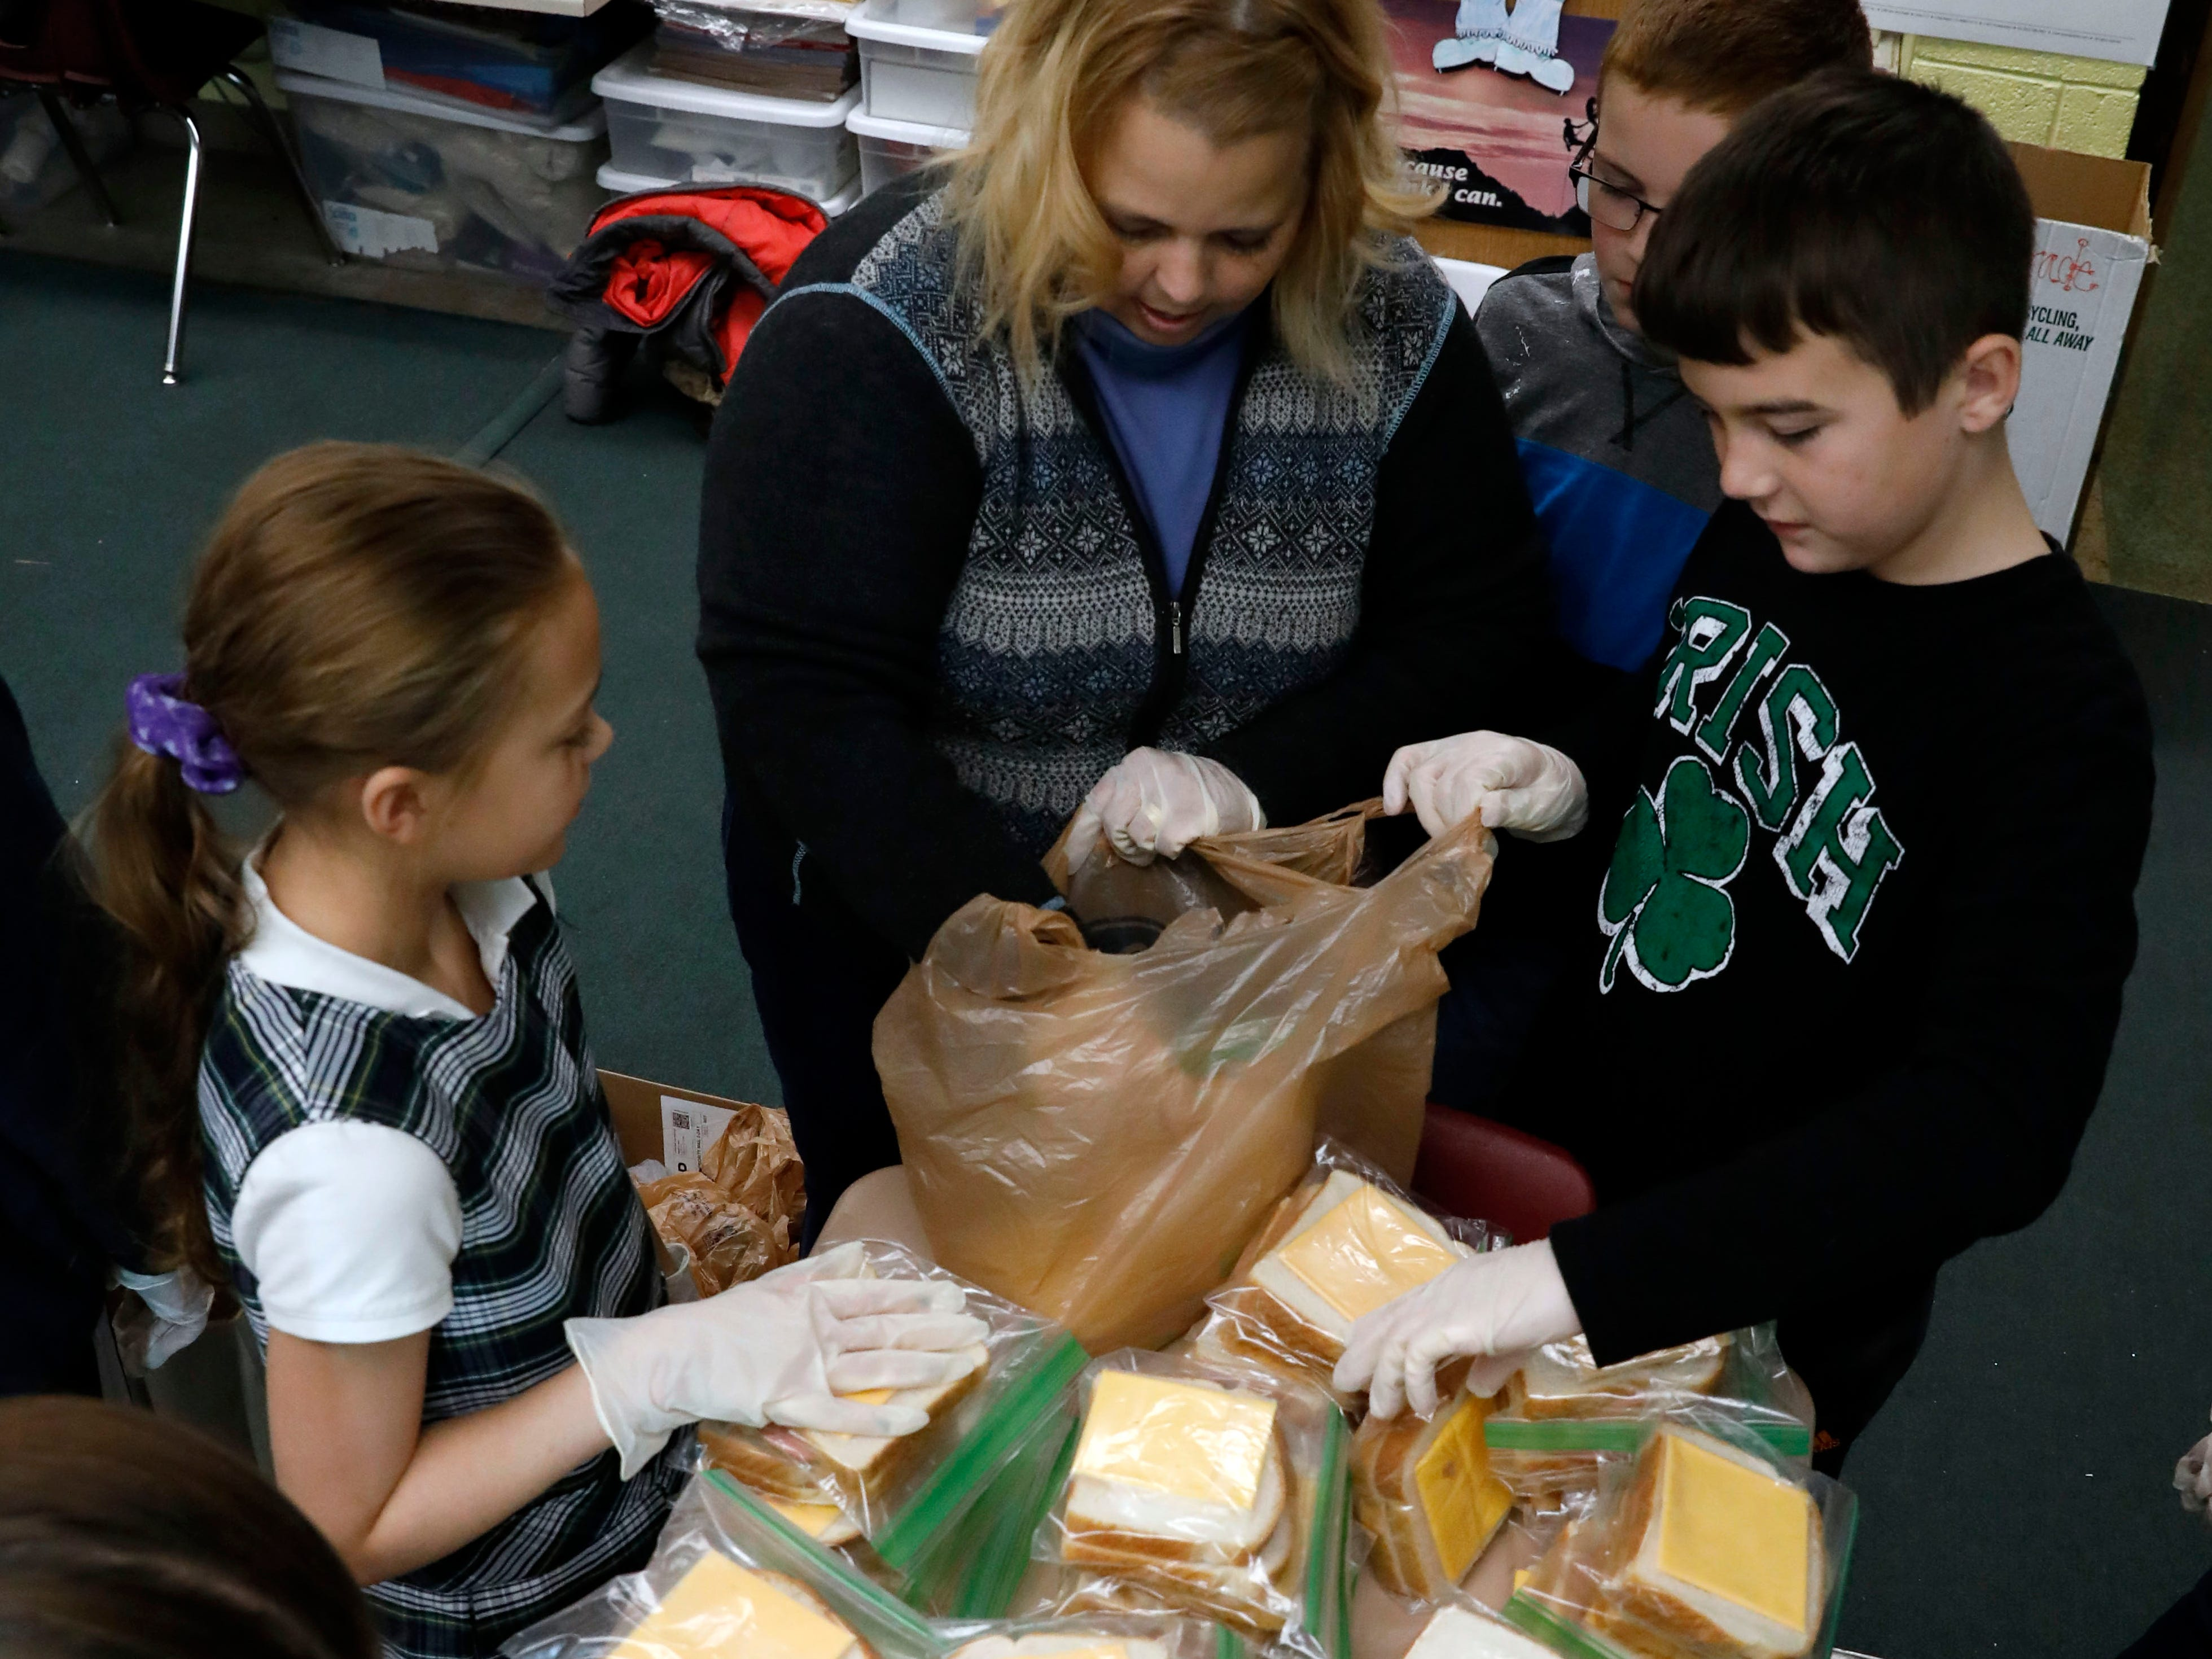 Robin Sanders gets helps her students bag bologna and cheese sandwiches for Foundation Dinners Thursday, Nov. 8, 2018, at St. Bernadette Catholic School in Lancaster.